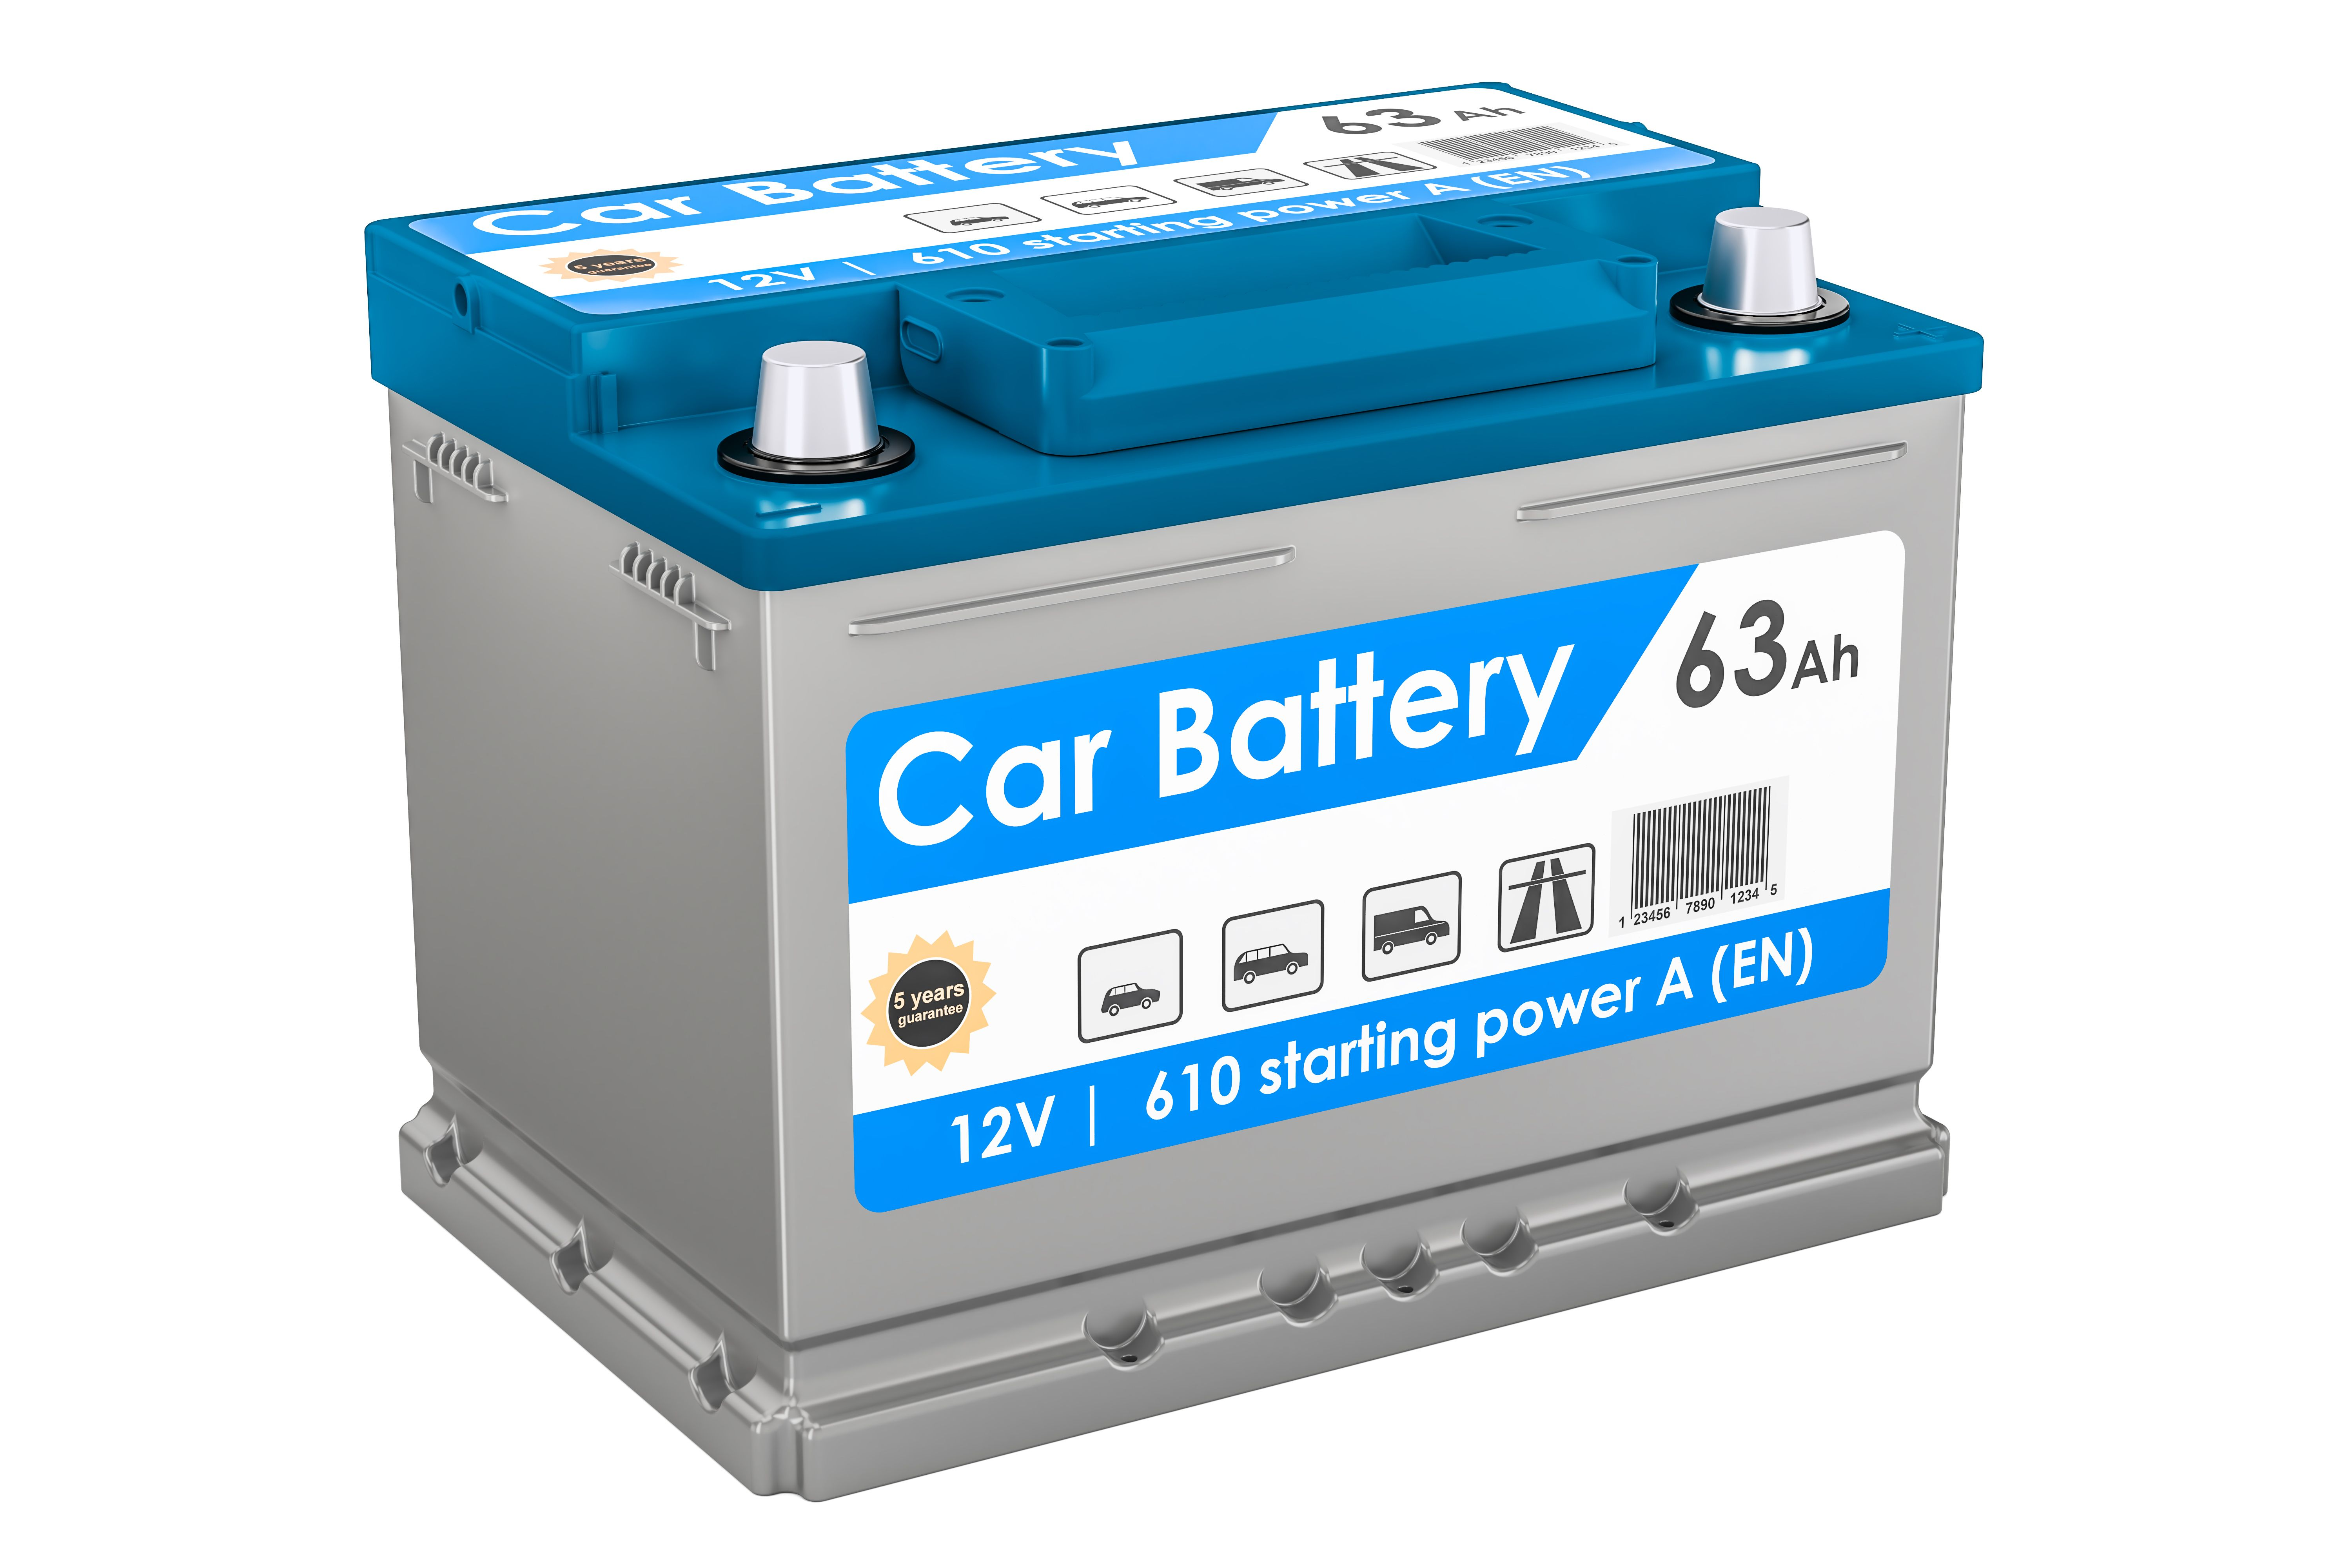 The Best Car Batteries How To Find The Best One For Your Vehicle